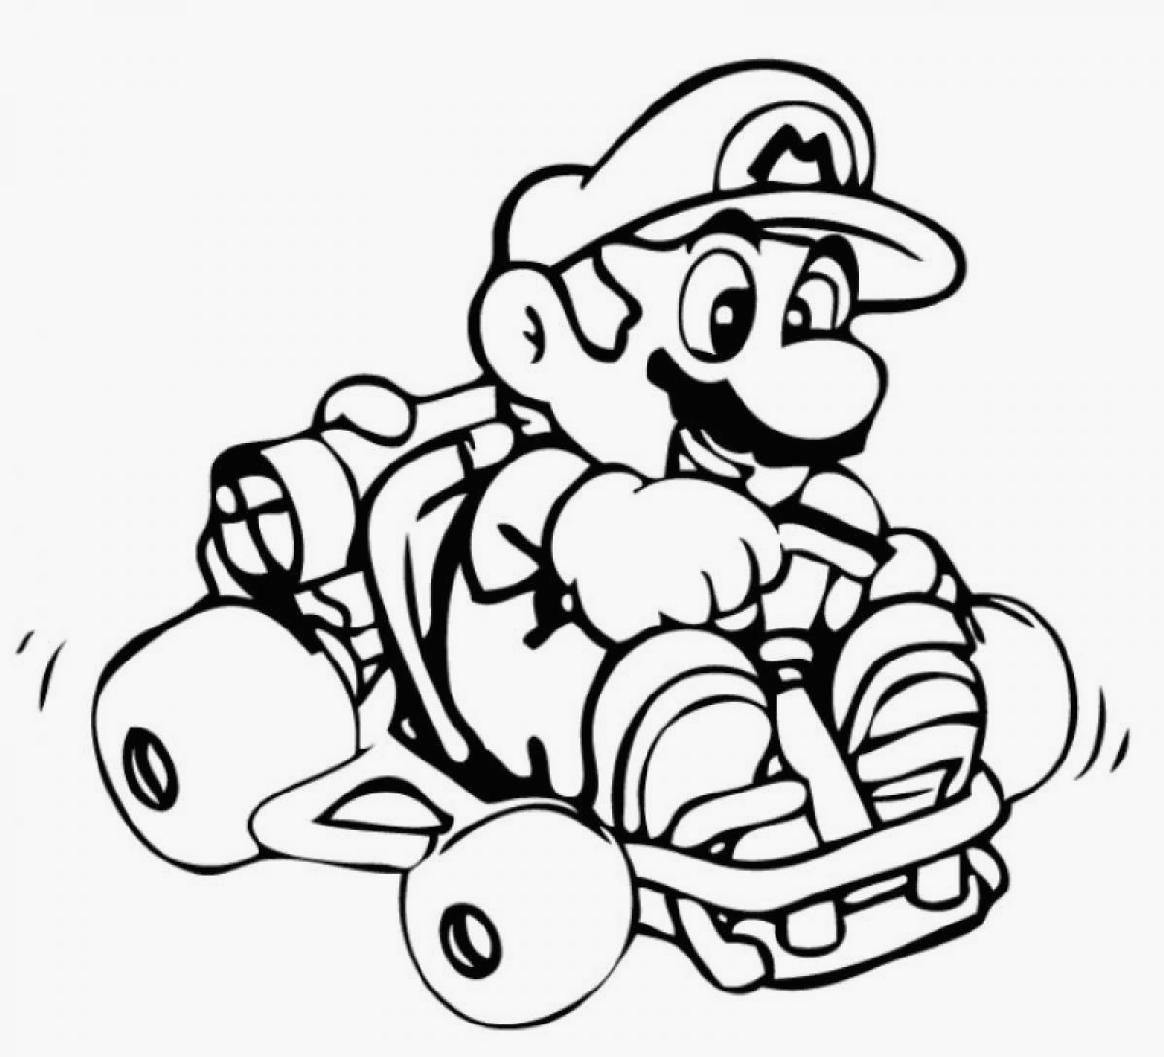 18 Free Pictures for: Mario Coloring Pages. Temoon.us